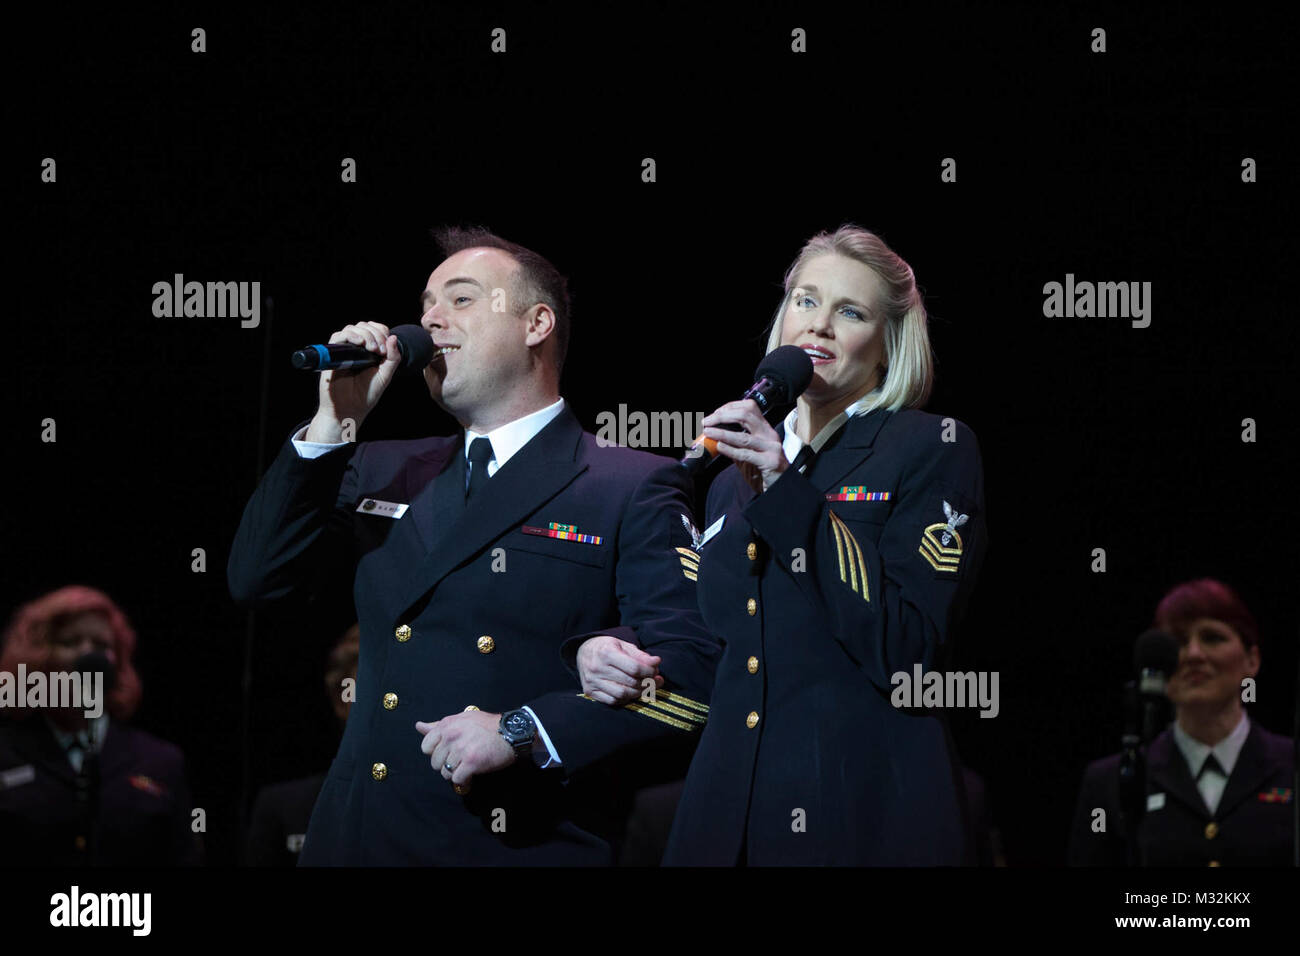 ALBANY N.Y. (April 11, 2016) Chief Musician Beth Revell and Musician 1st Class Michael Webb perform a duet with - Stock Image